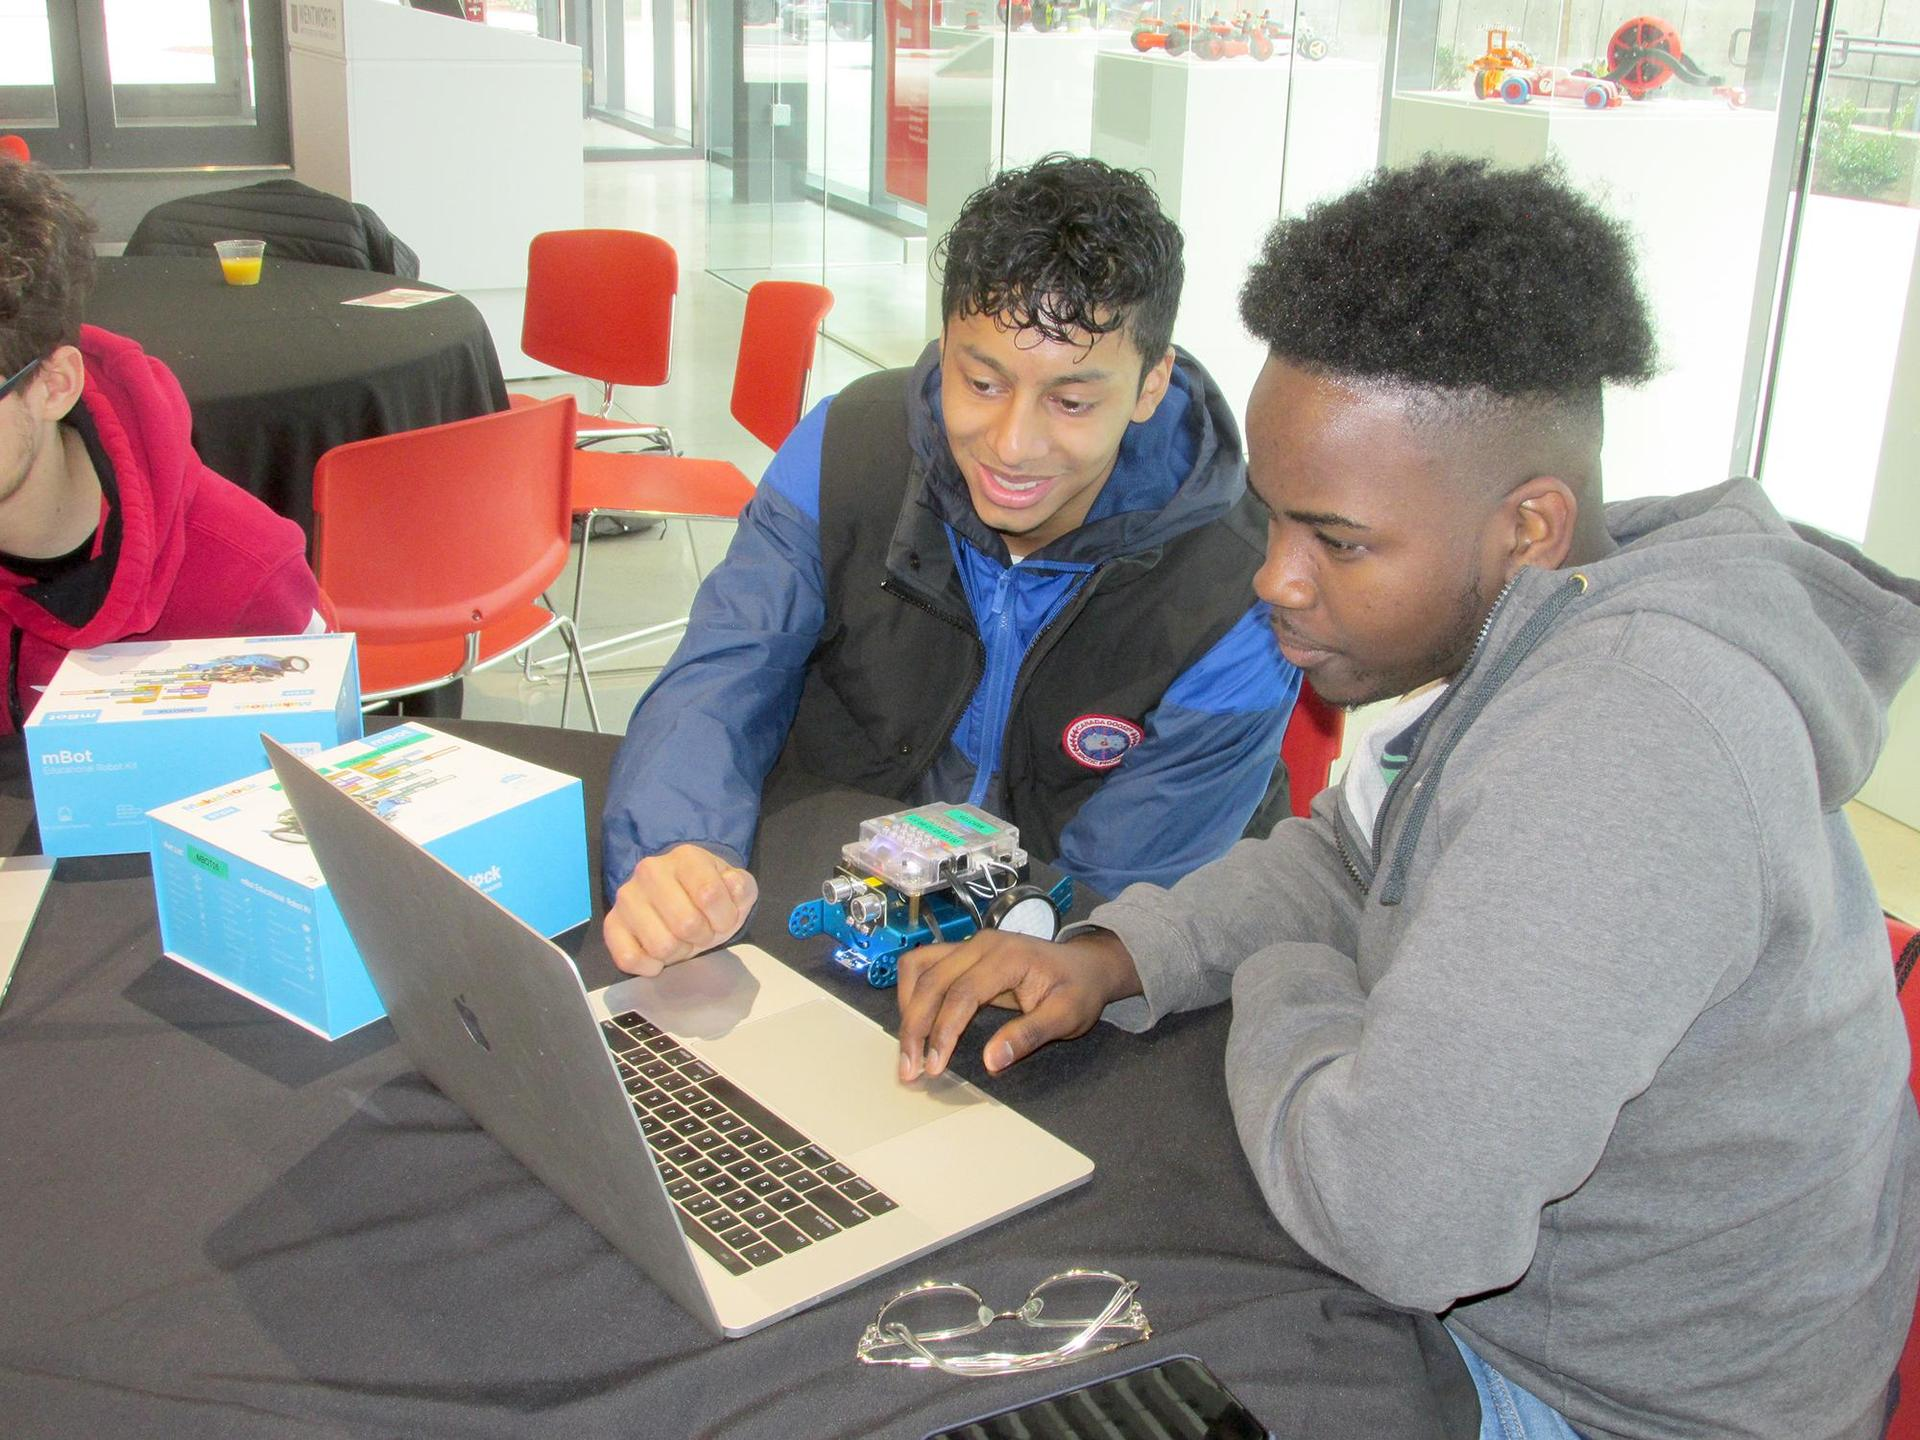 Two students looking at a laptop screen